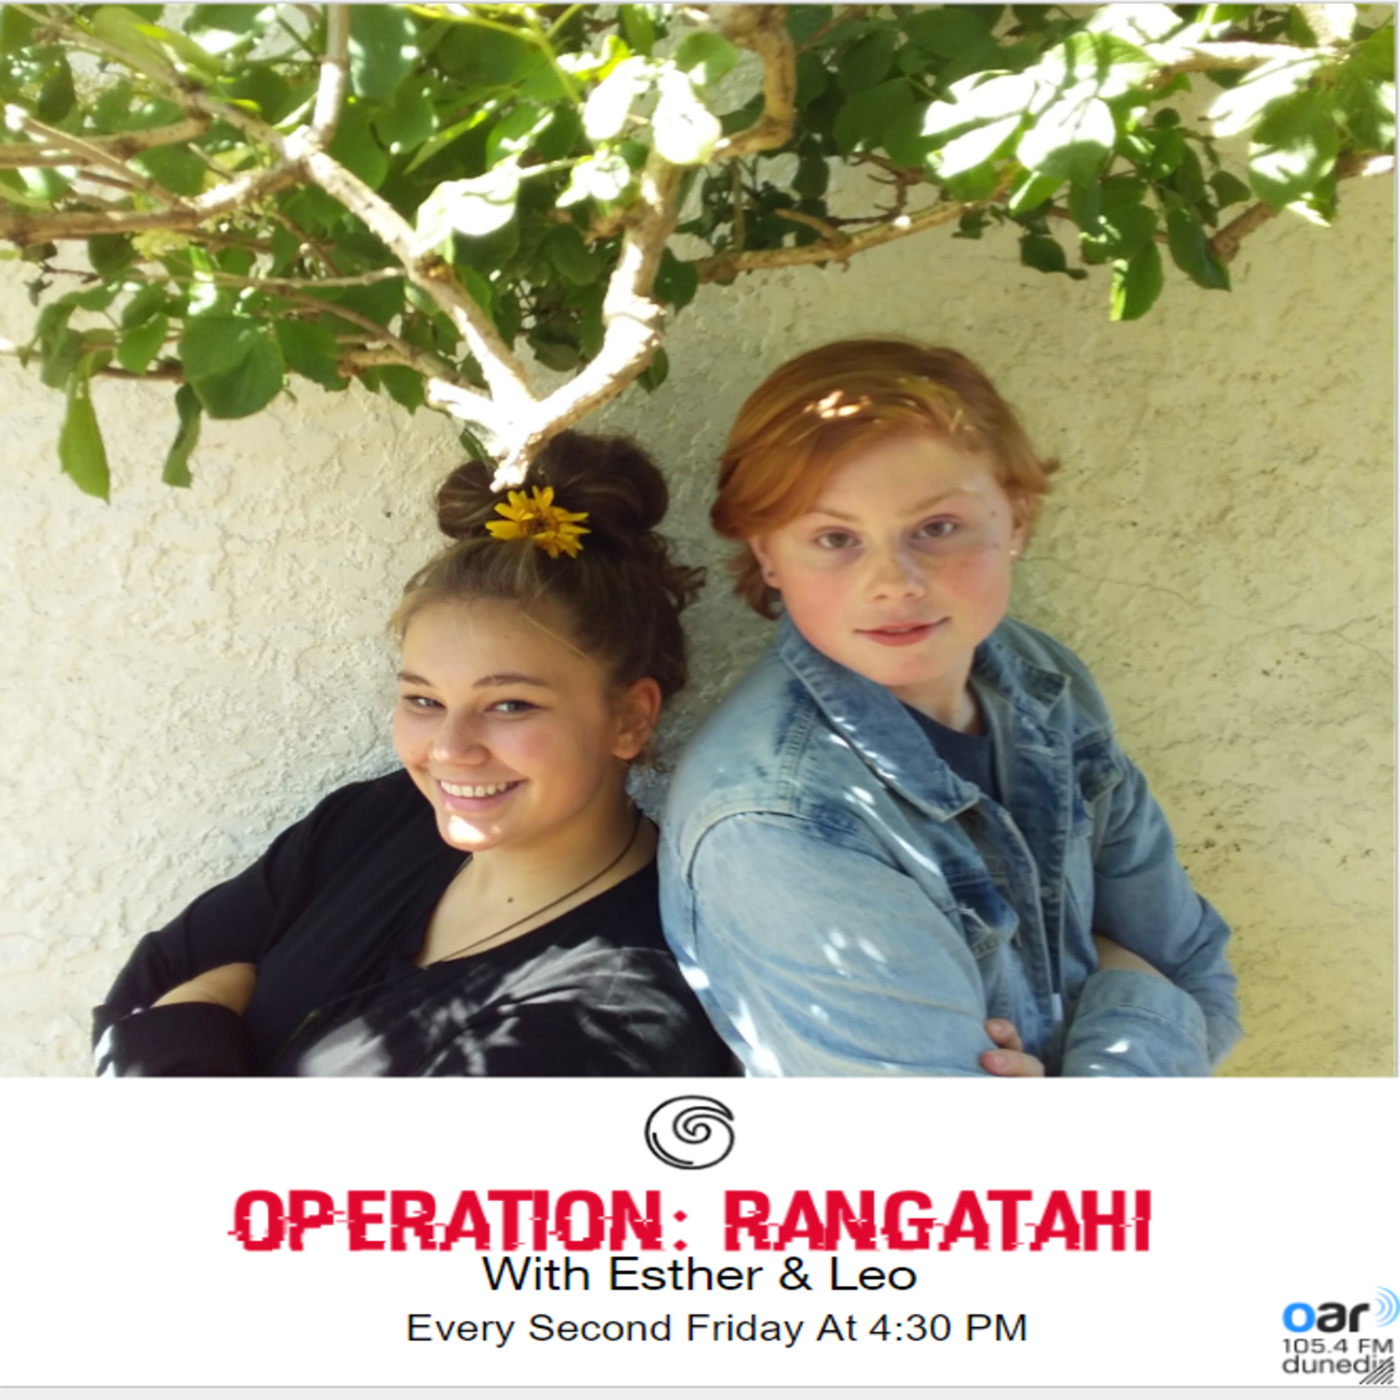 https://cdn.accessradio.org/StationFolder/otago/Images/Operation_Rangatahi_Podcast_Poster.png.png